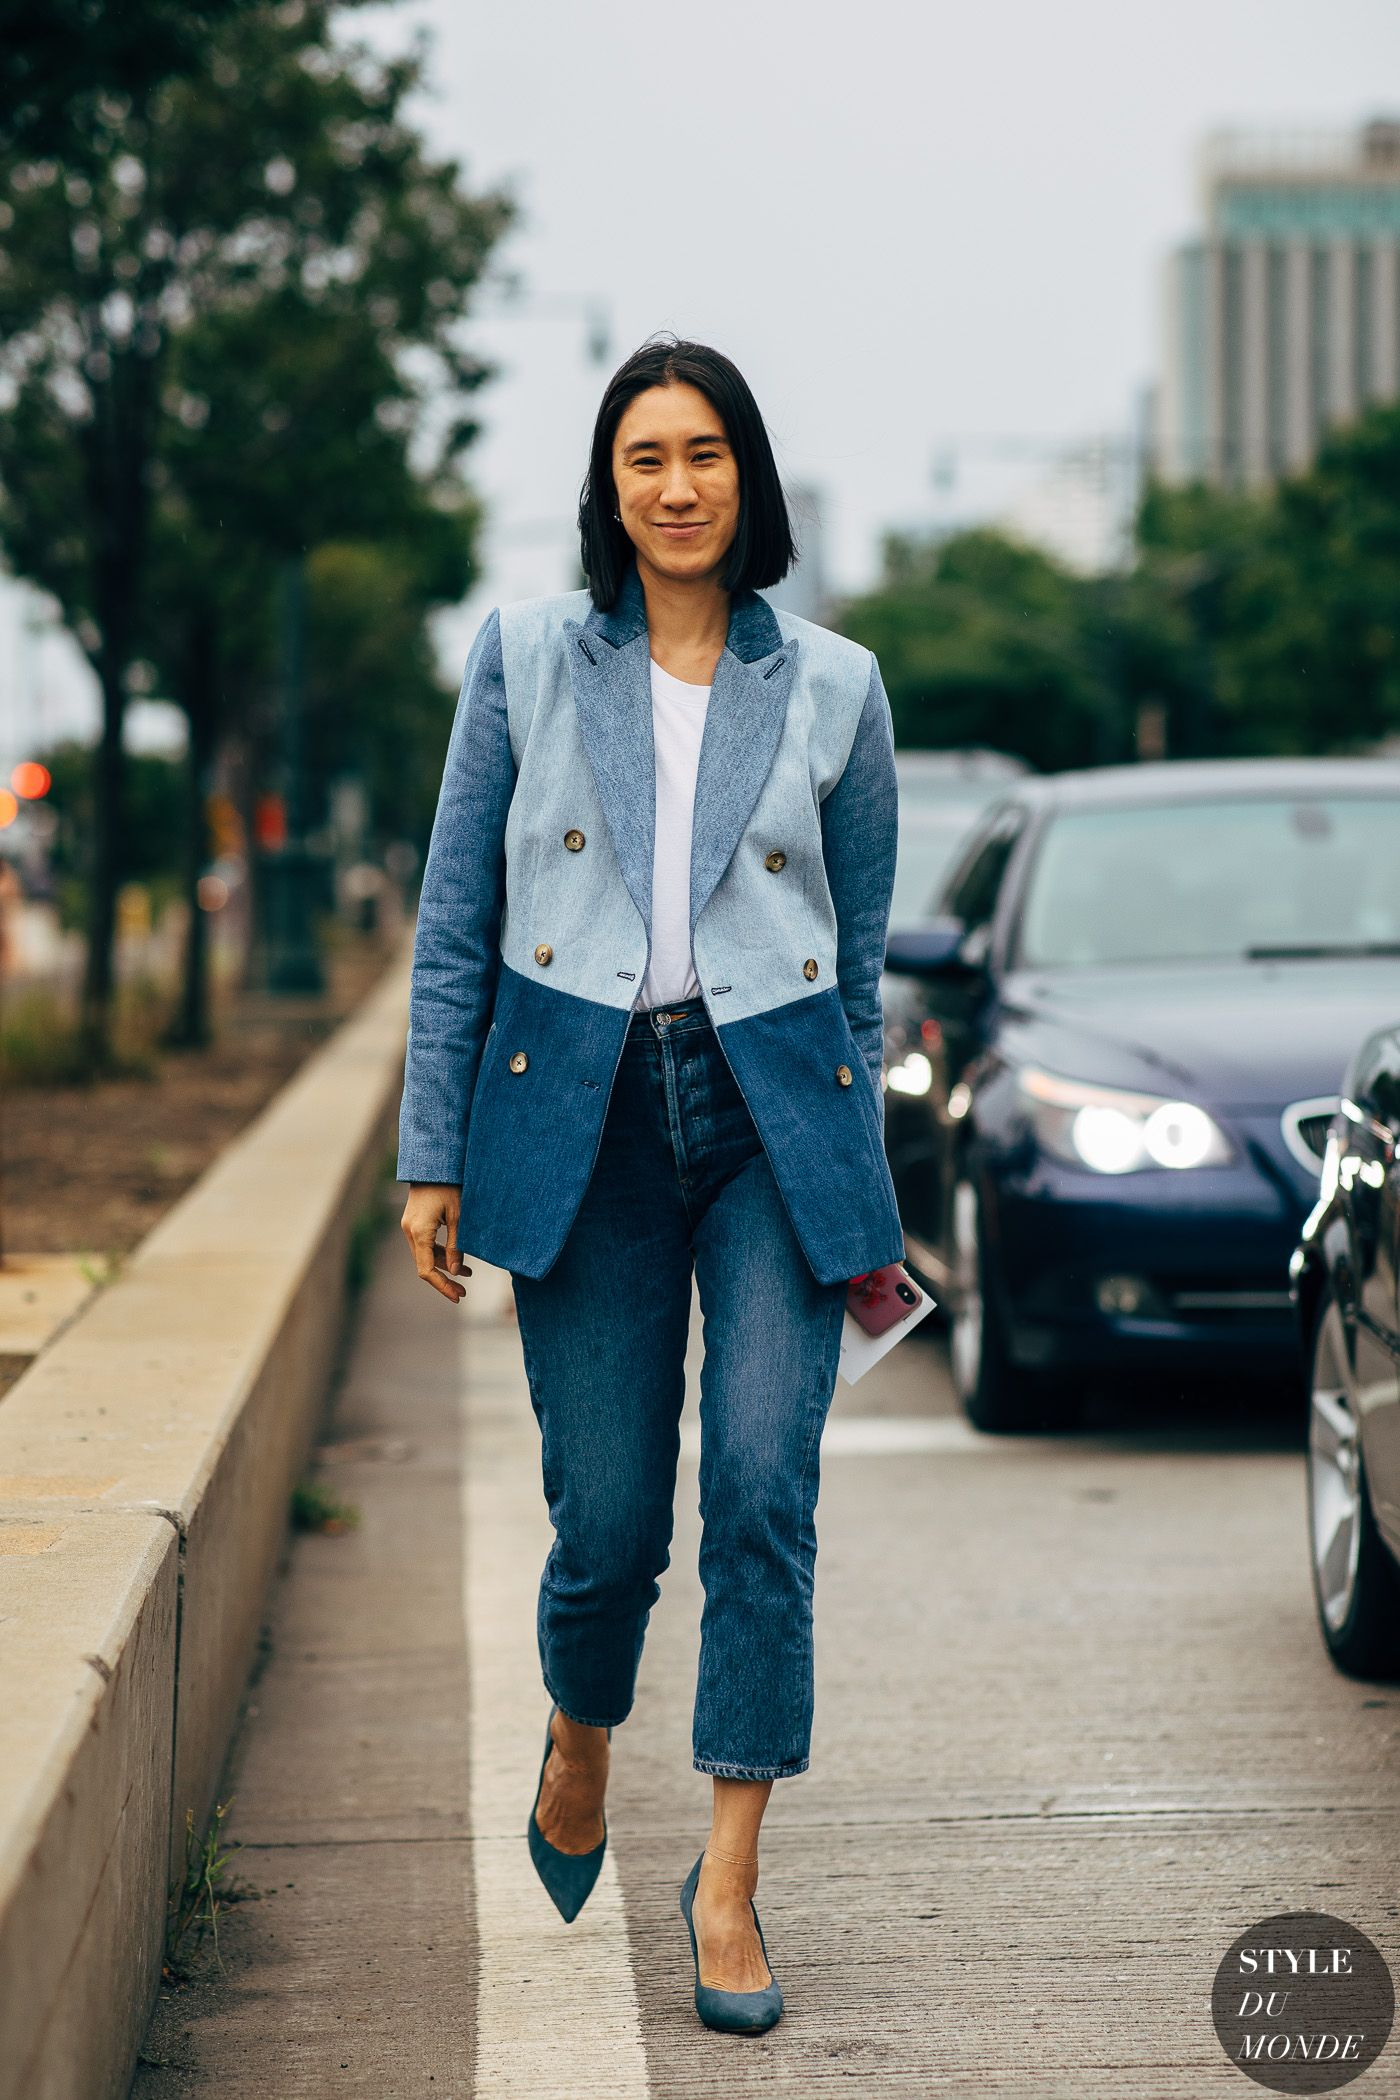 Eva Chen Shares Her Fall Fashion Staples (and Some Style Tips,Too)